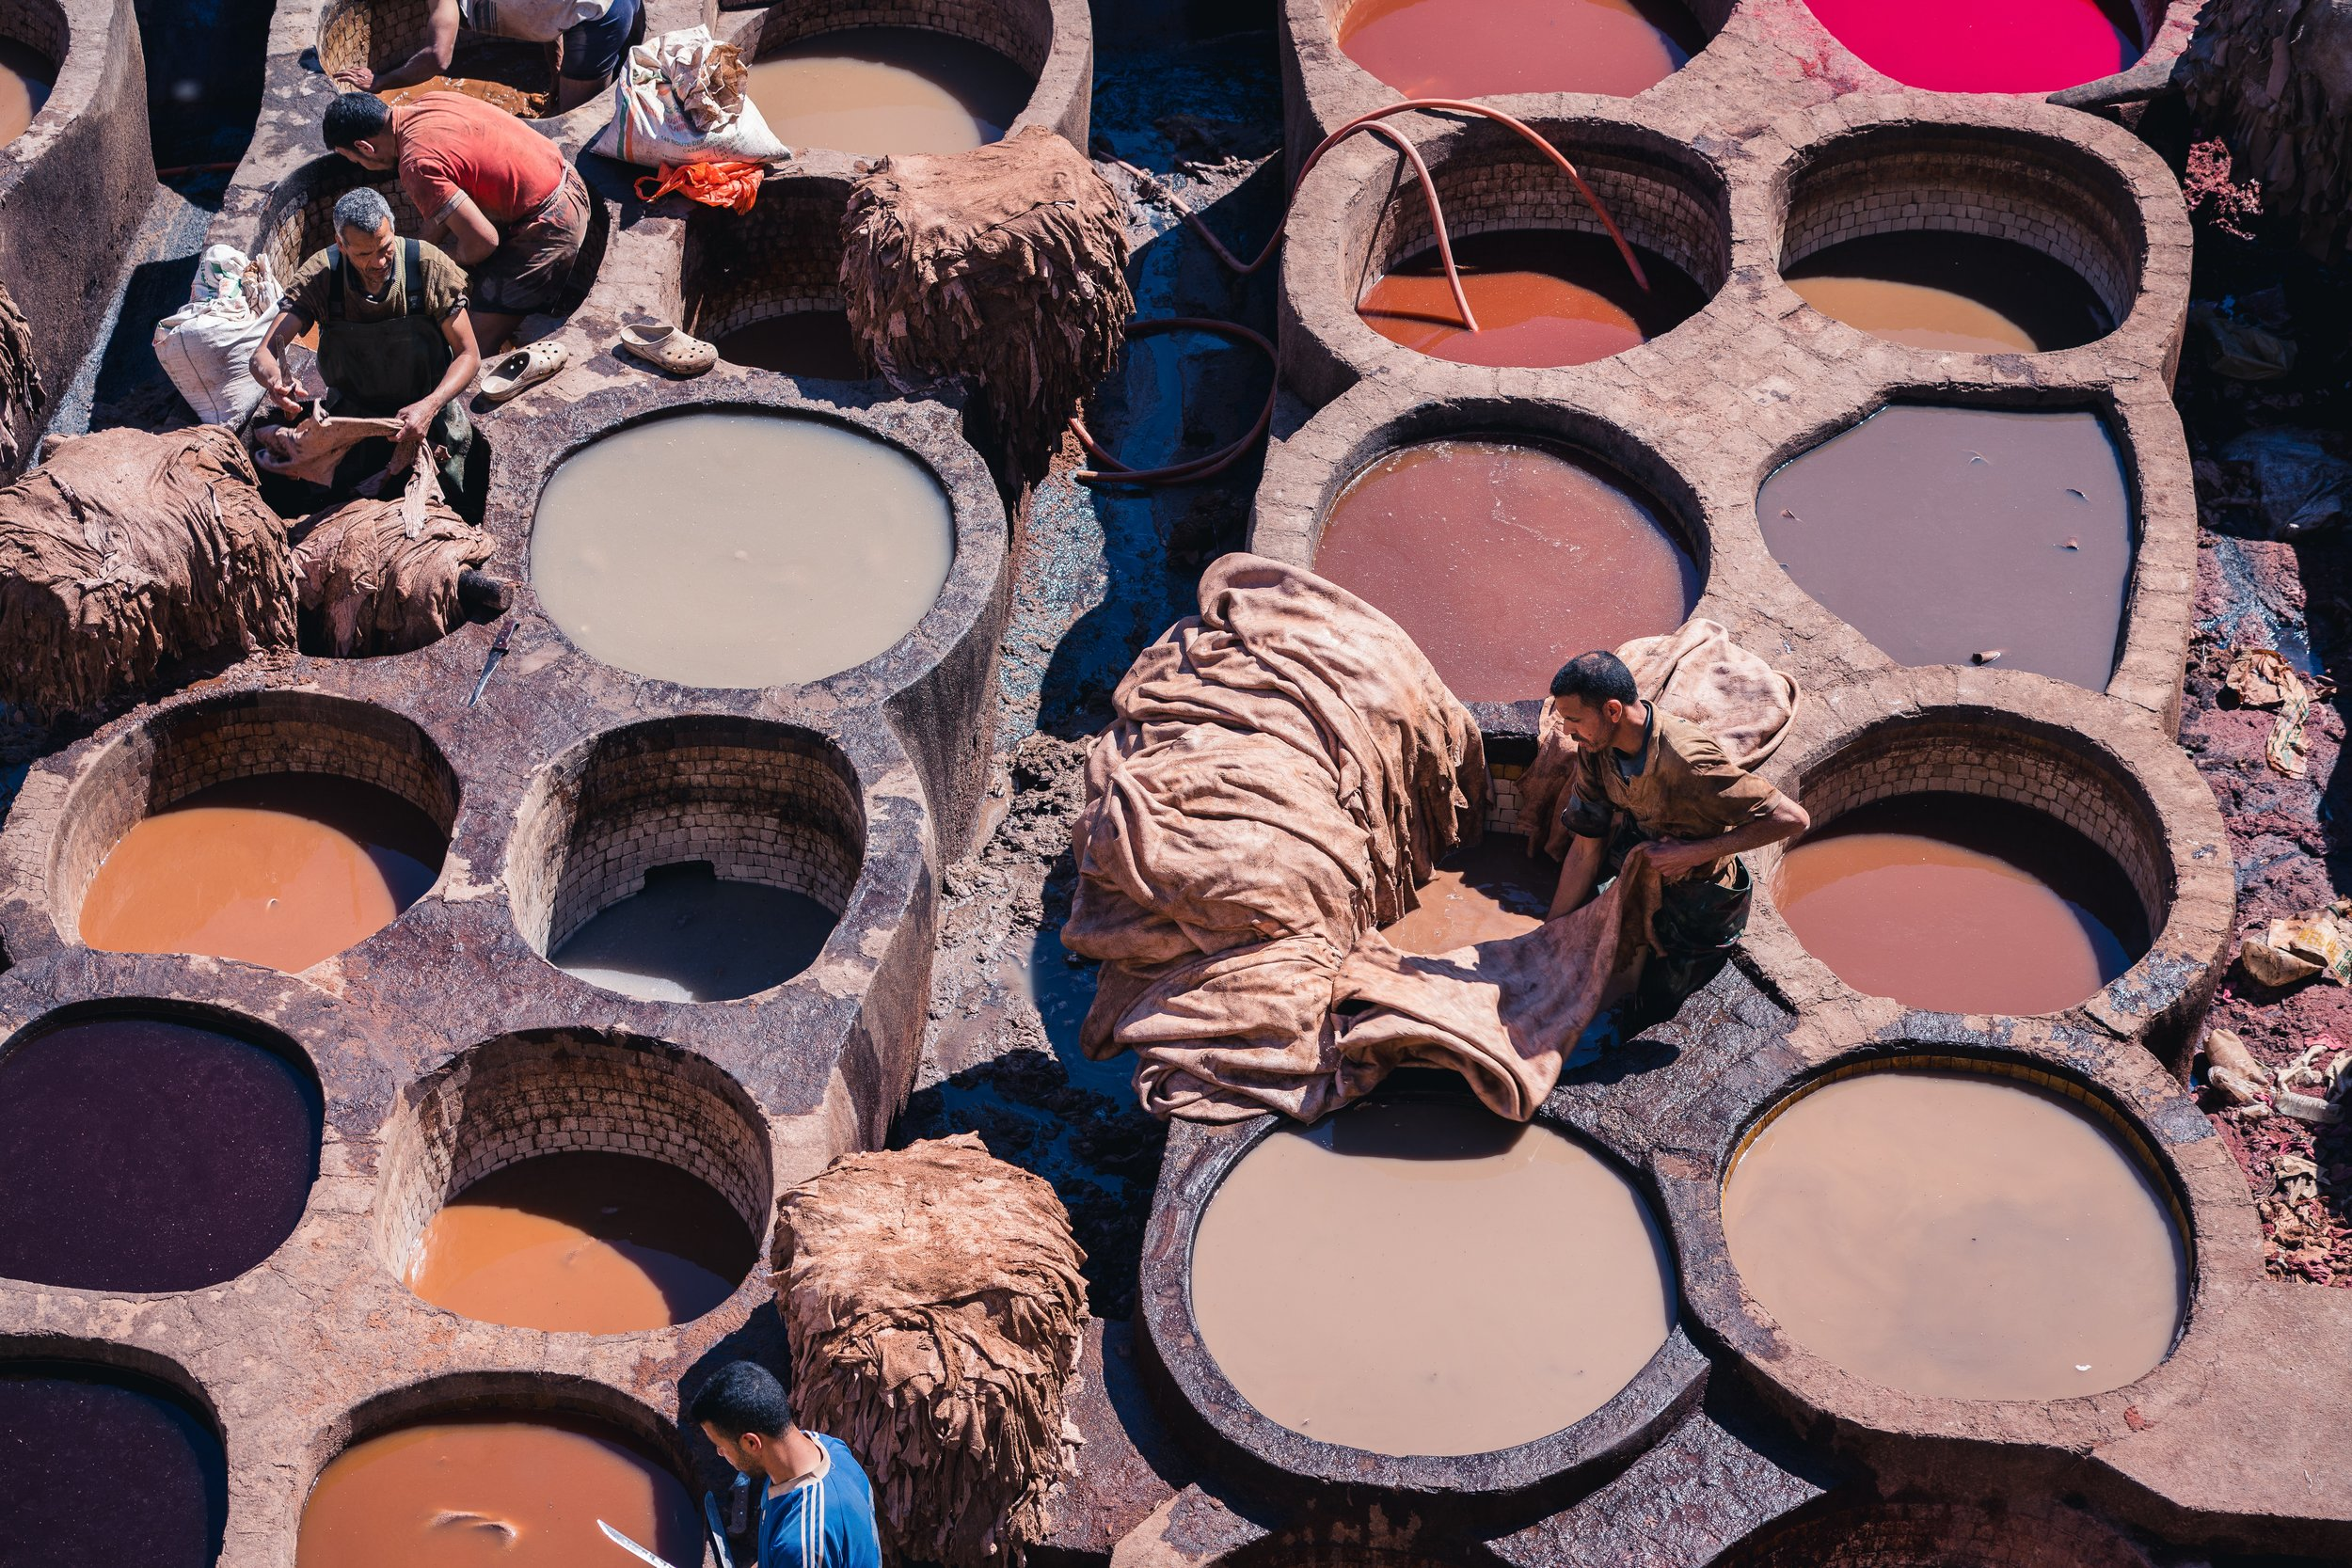 Tanneries use massive amounts of chemicals and water to convert hides into leather, which creates a host of health problems for workers and nearby residents and pollutes waterways.